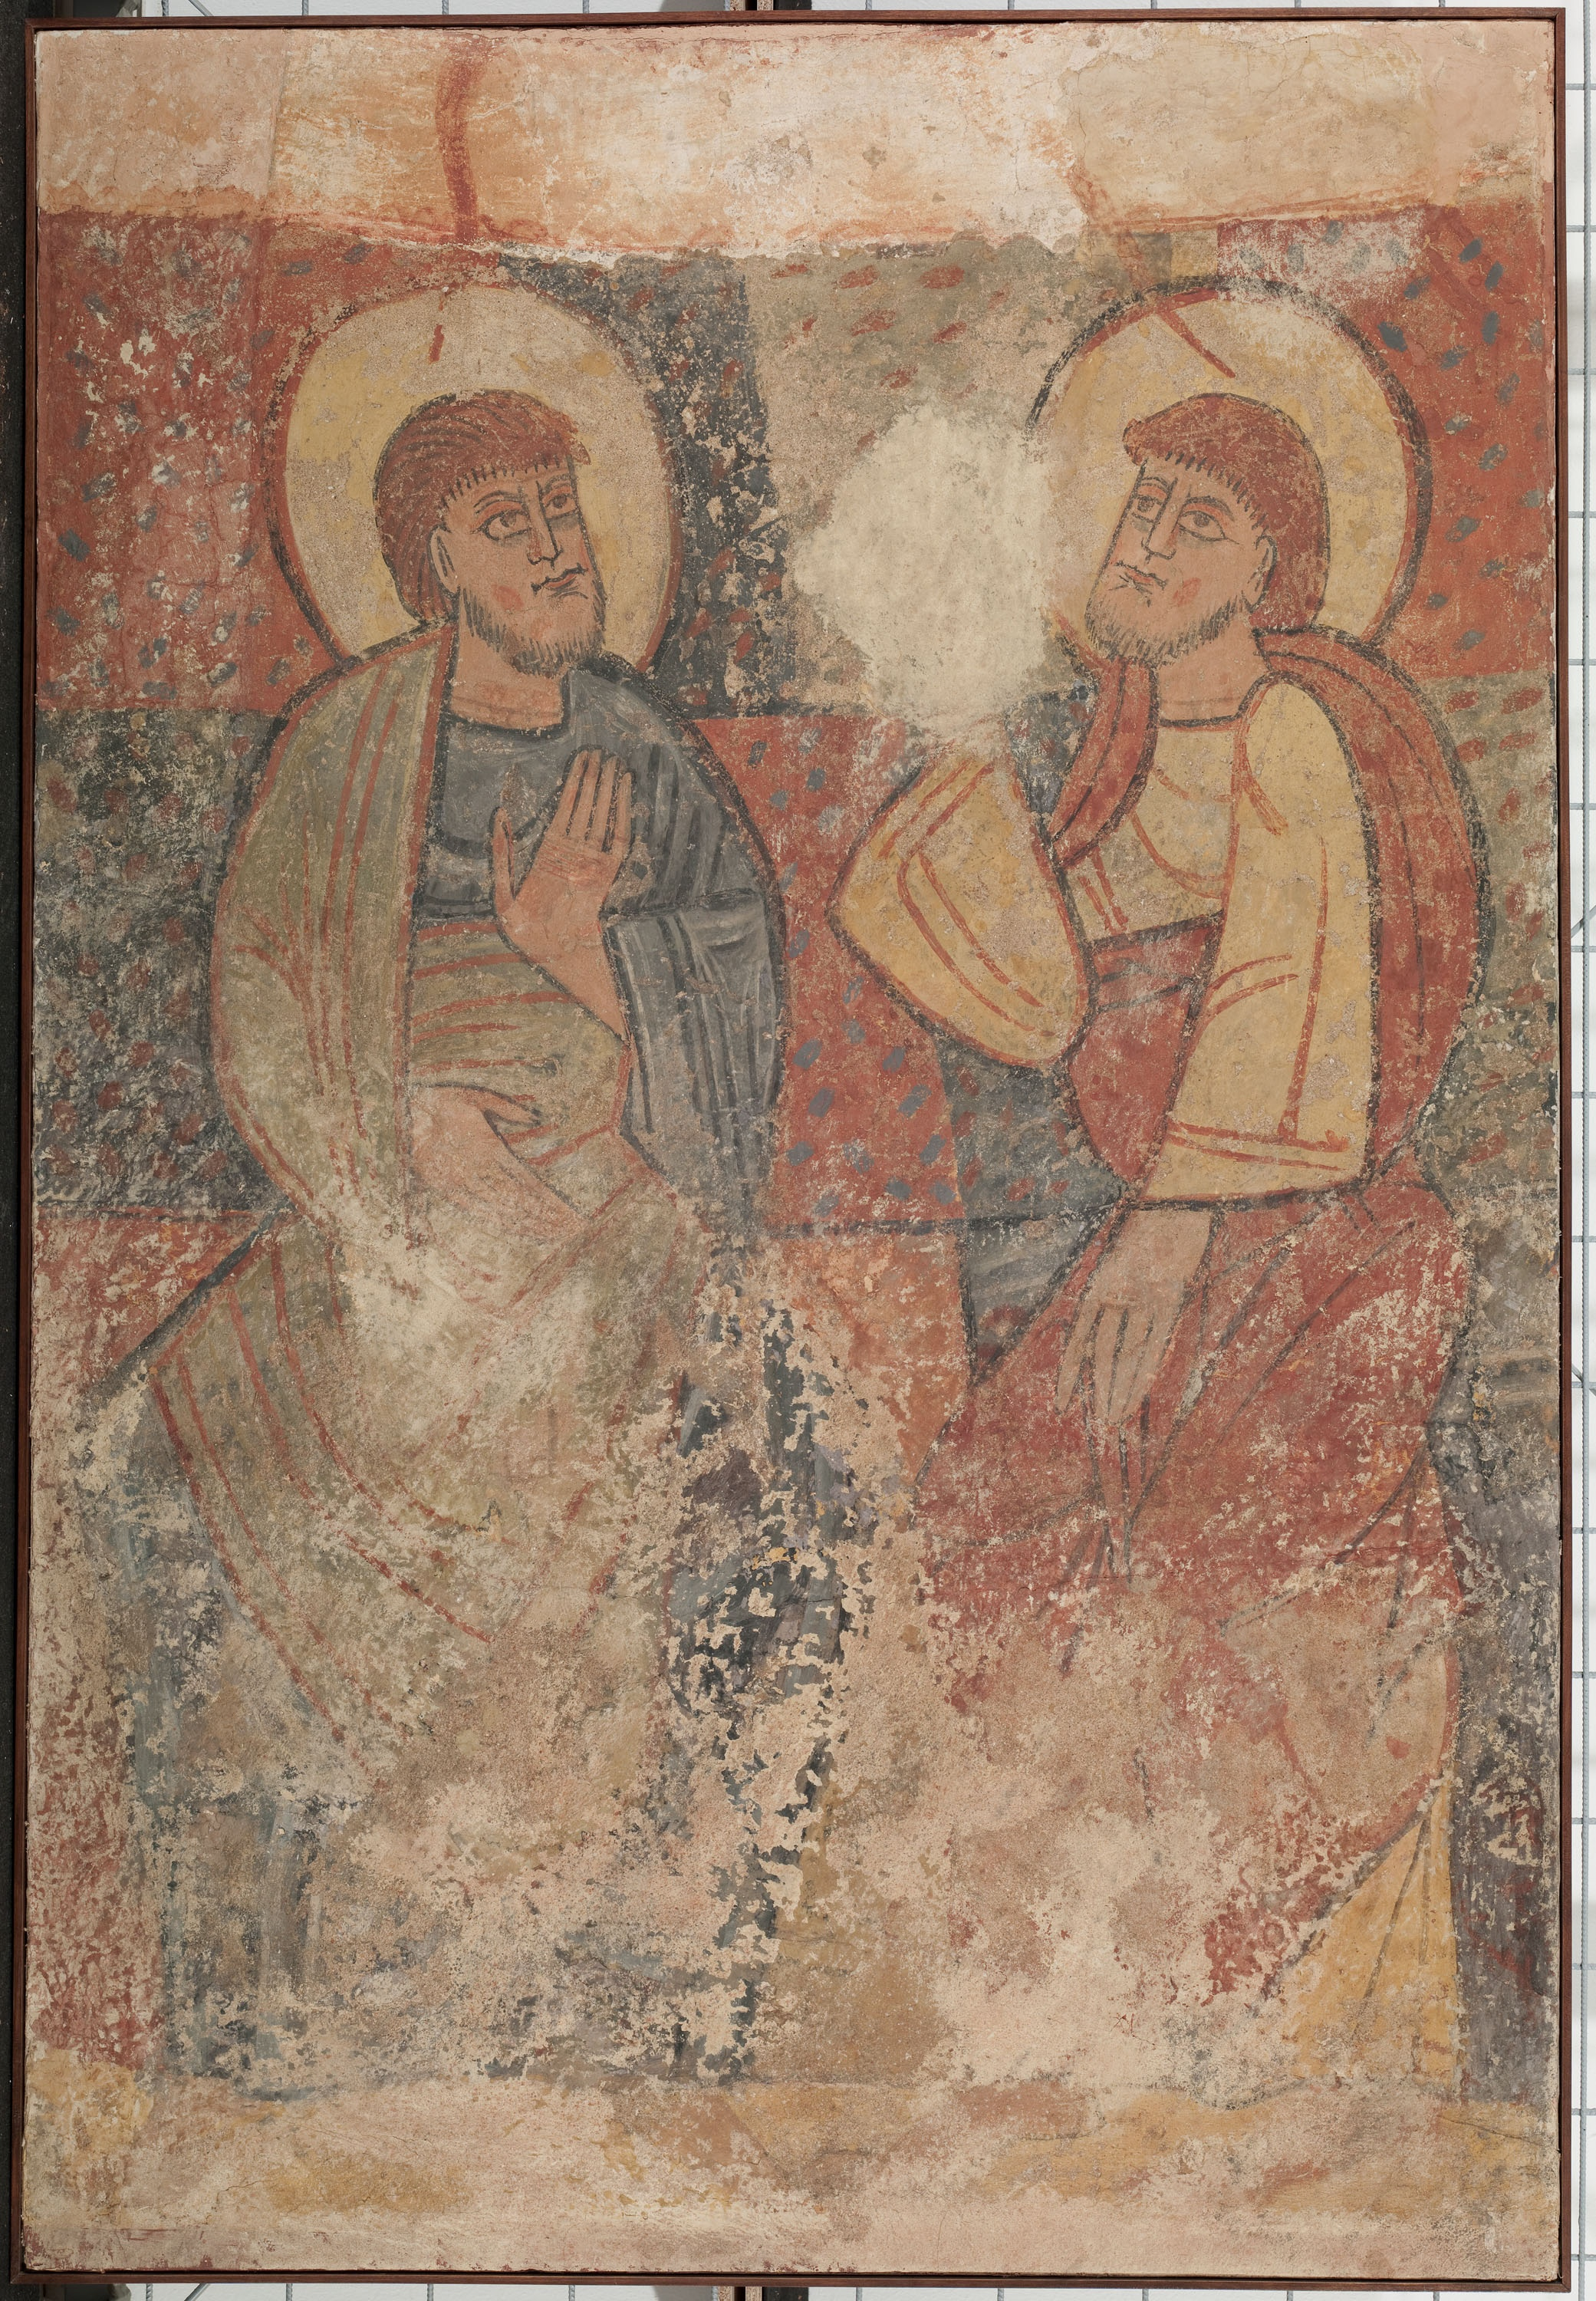 Anònim - Apostles of the Pentecost, from Bellcaire - Third quarter of the 12th century